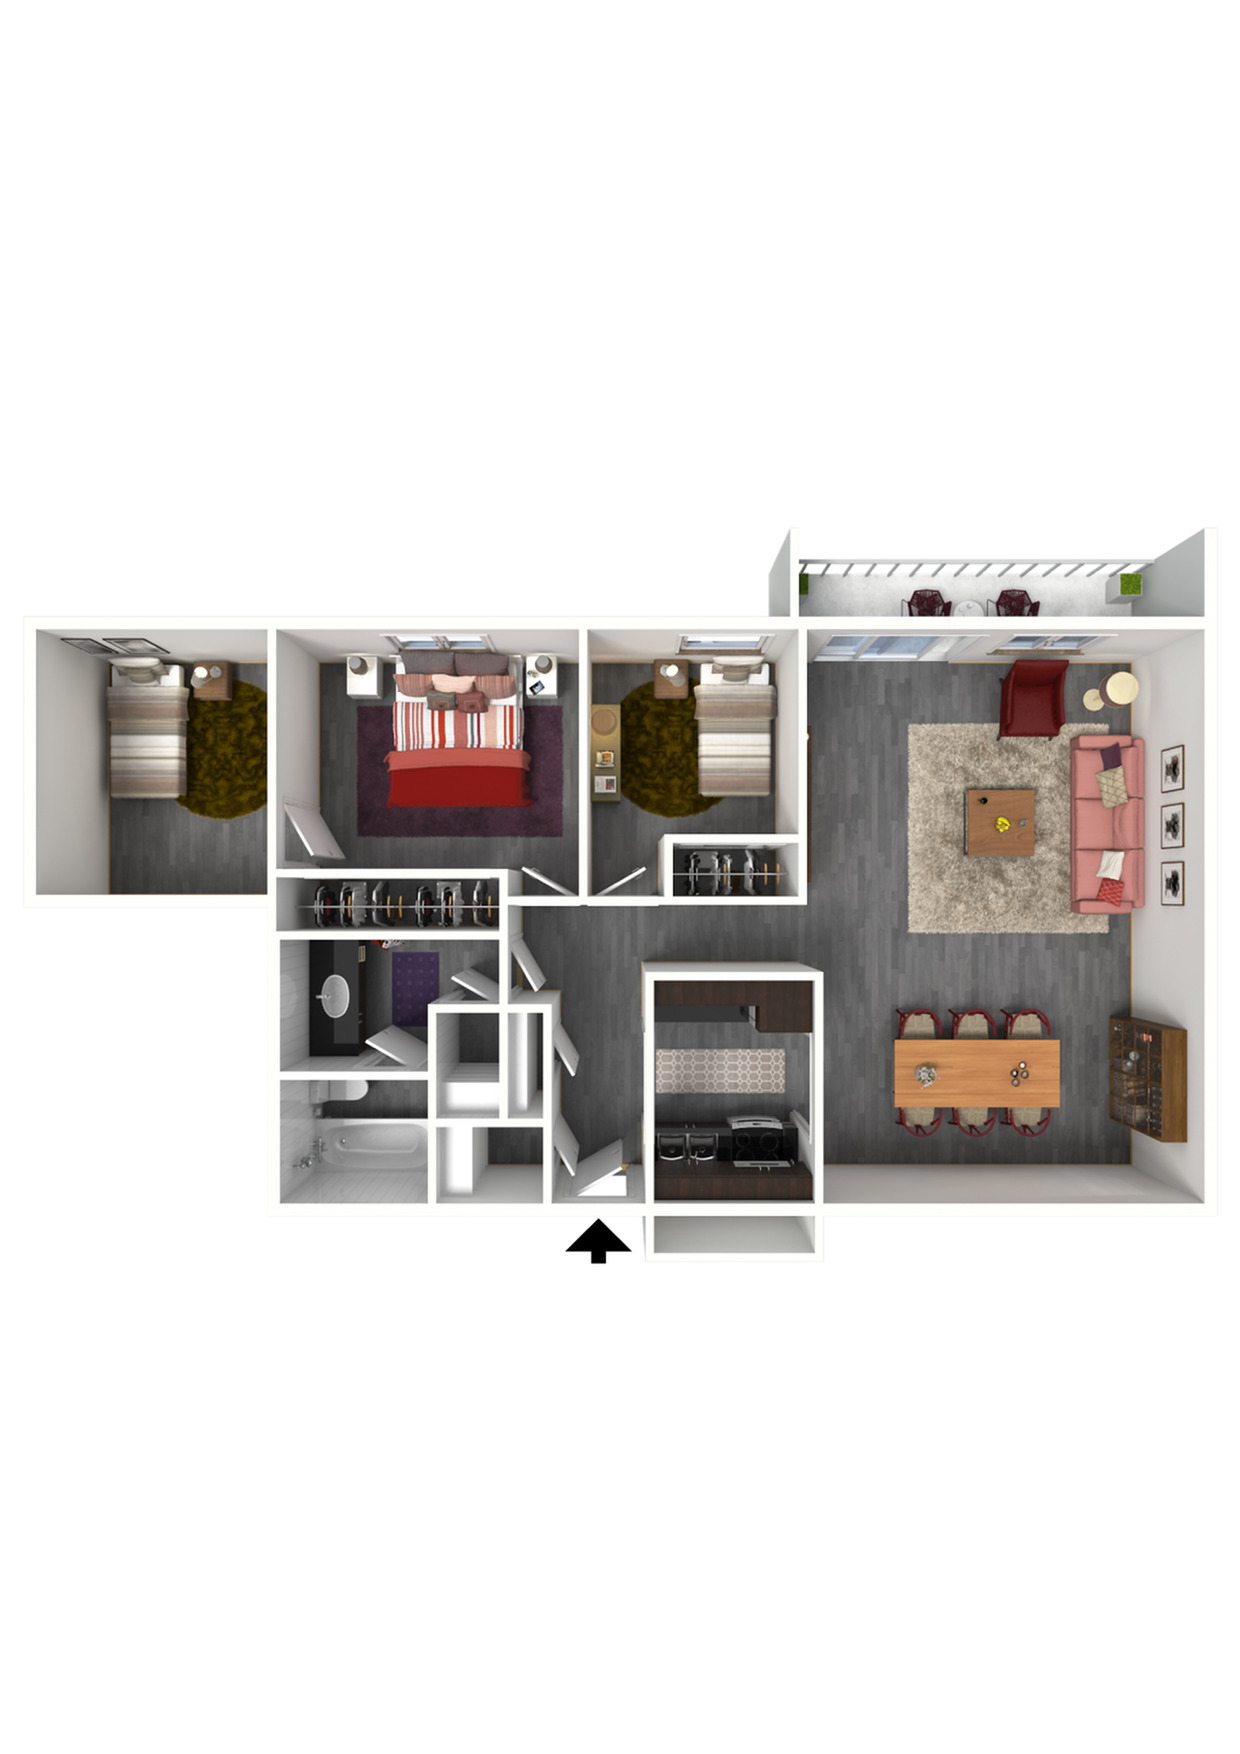 3 Bedroom, 1 Bathroom; 1000sqft